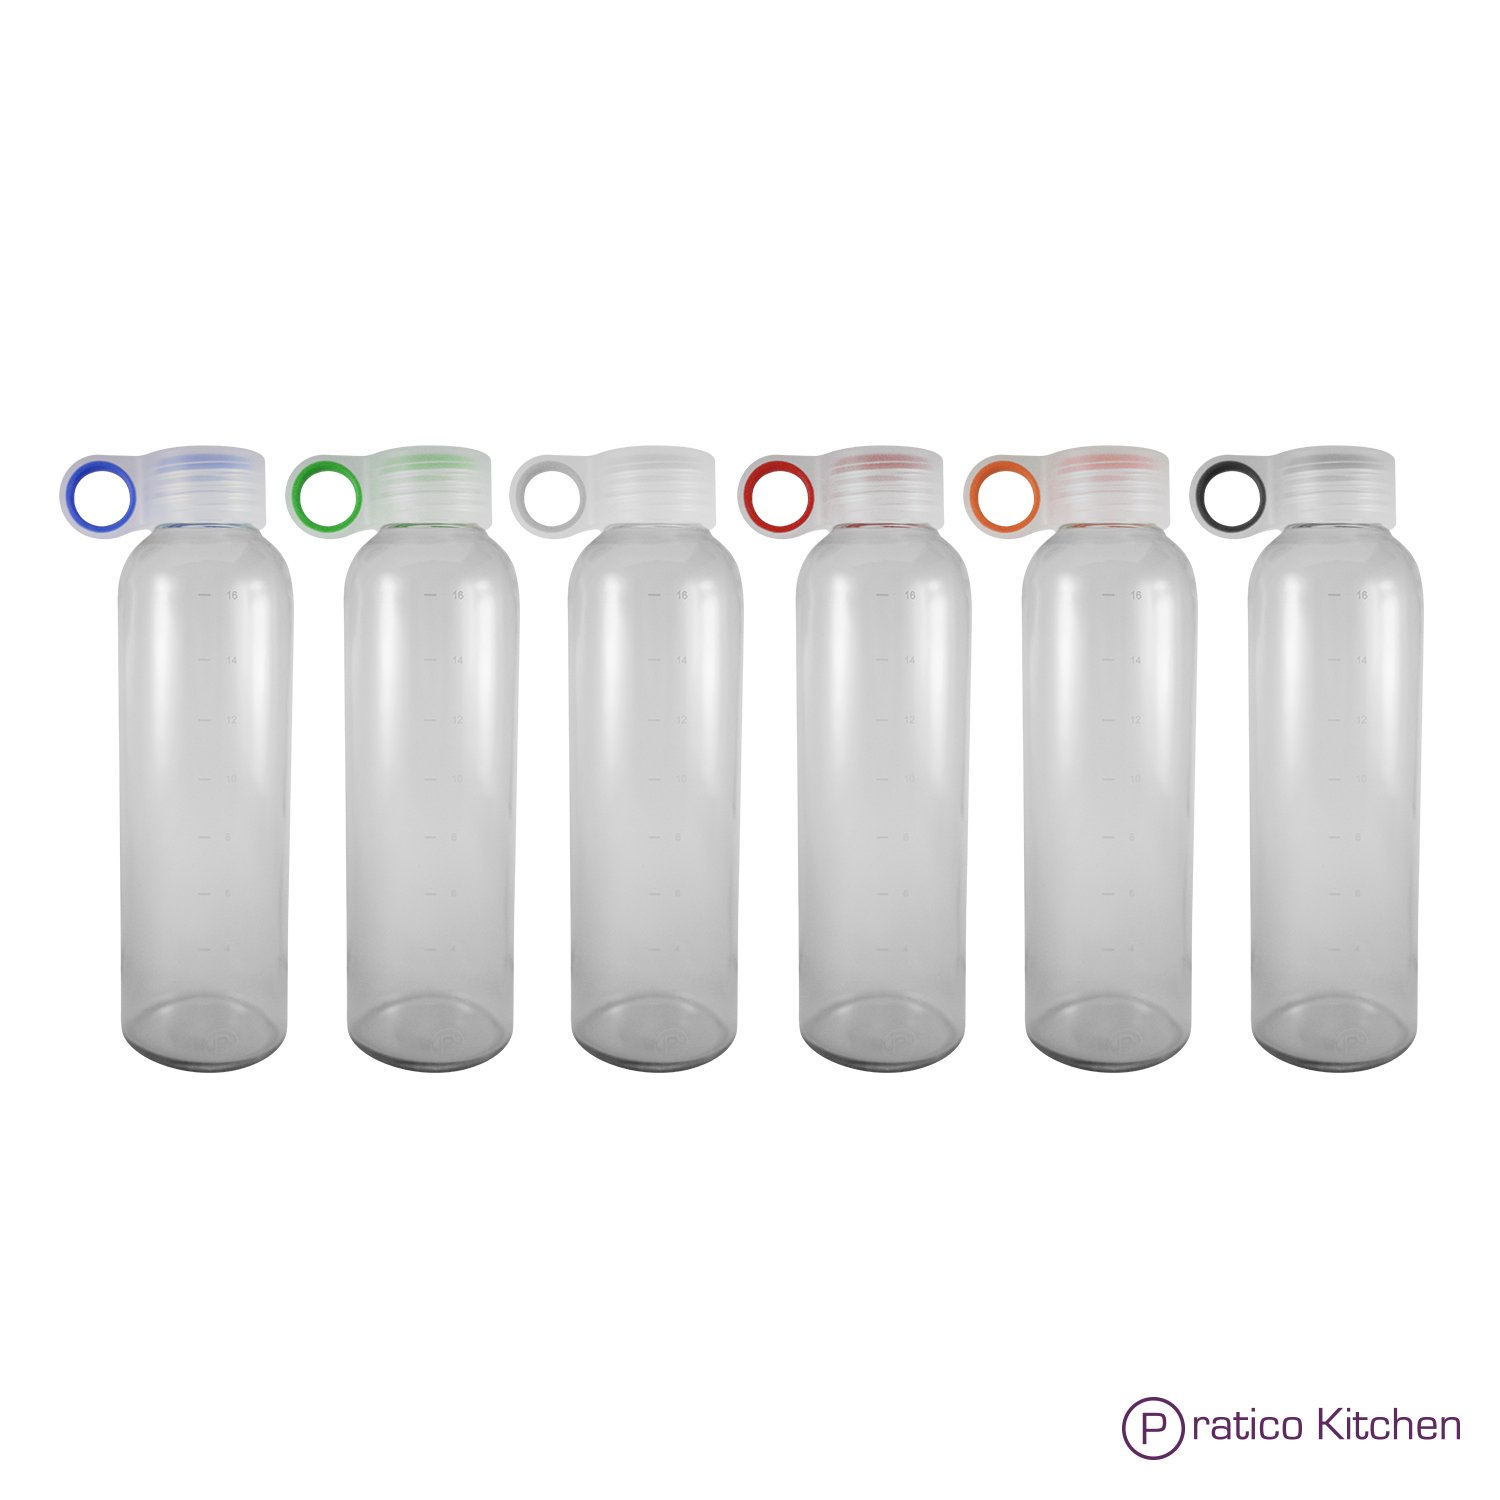 Pratico Kitchen 18oz Leak-Proof Glass Bottles, Juicing Containers, Water/Beverage Bottles - 6-Pack with Multi-Color Loop Caps by Pratico Kitchen (Image #2)